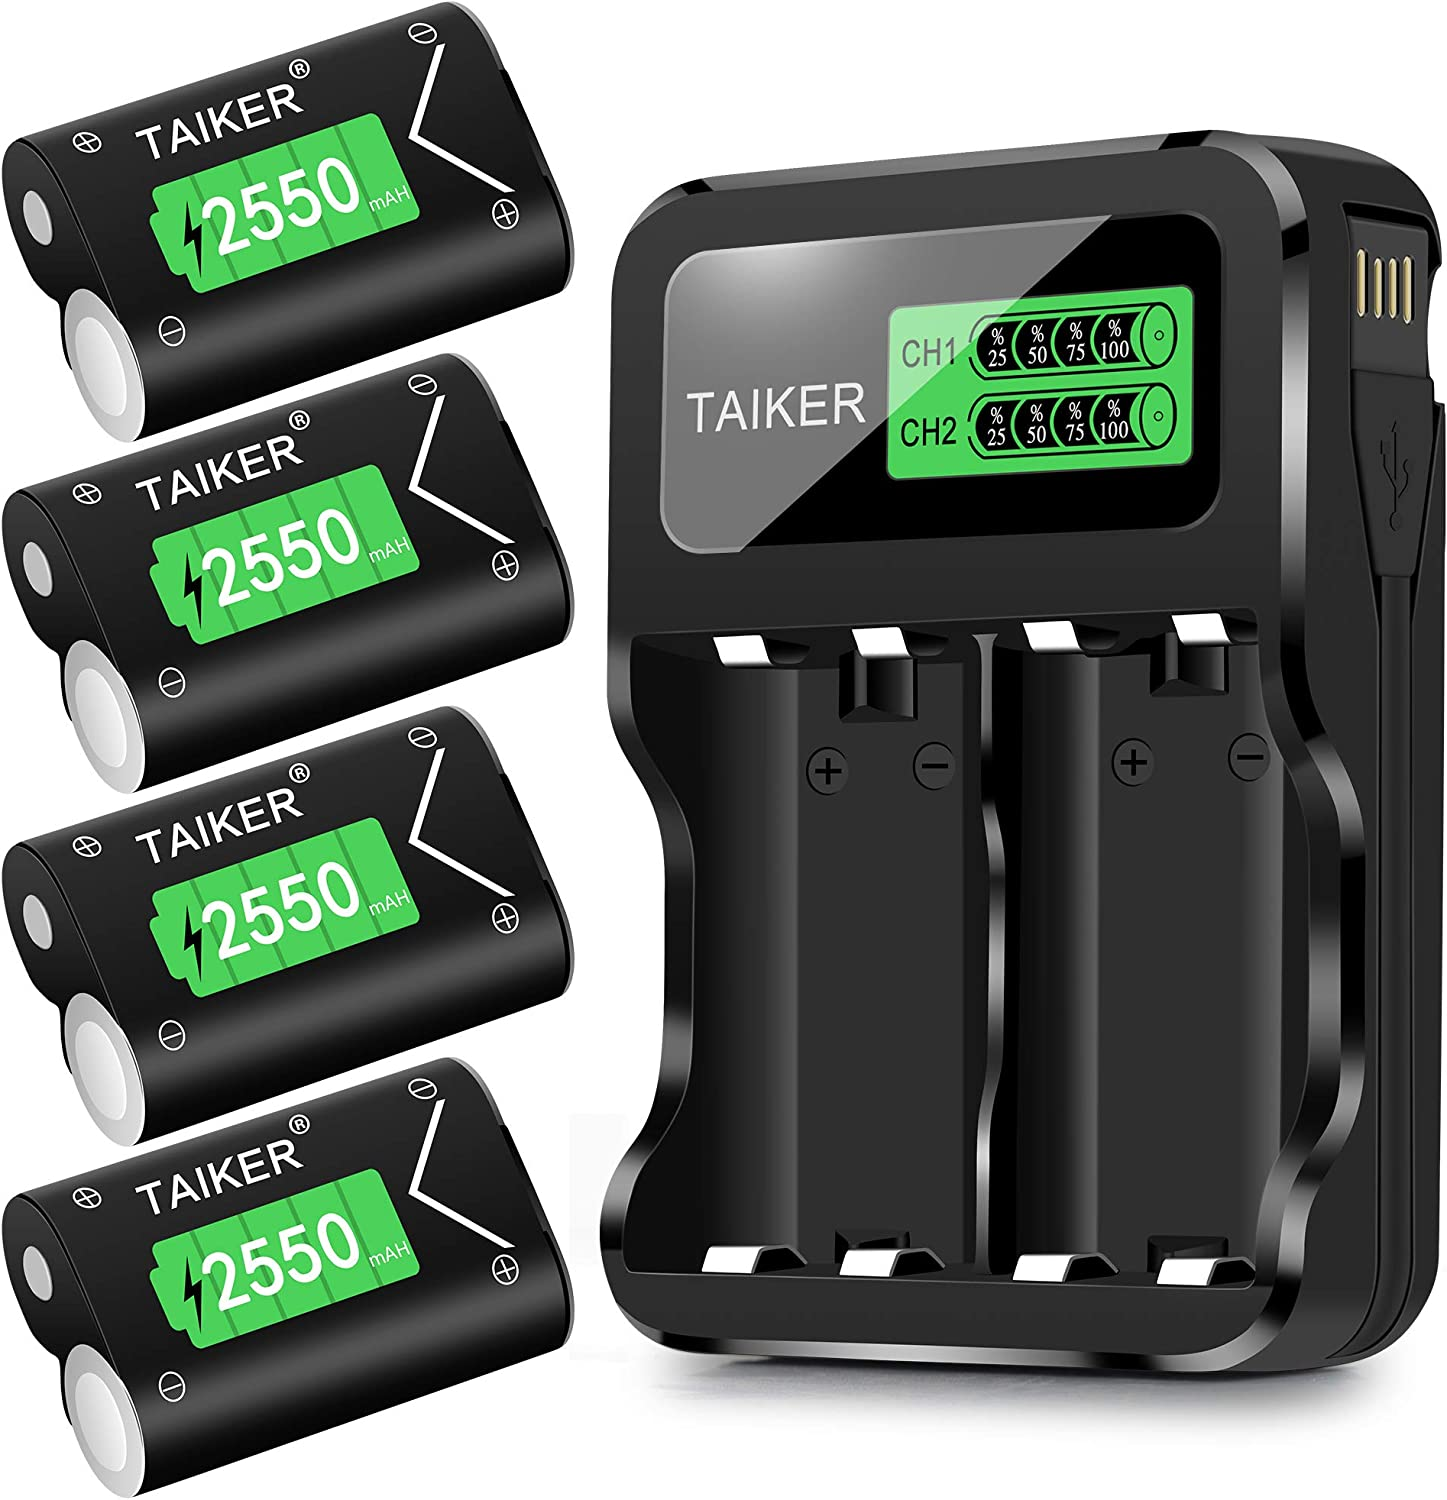 TAIKER Compatible with Xbox One Battery 4 Pack x 2550mAh Rechargeable Controller Battery and Charger for Xbox One/Xbox One S/Xbox One X/Xbox One Elite Wireless Controller